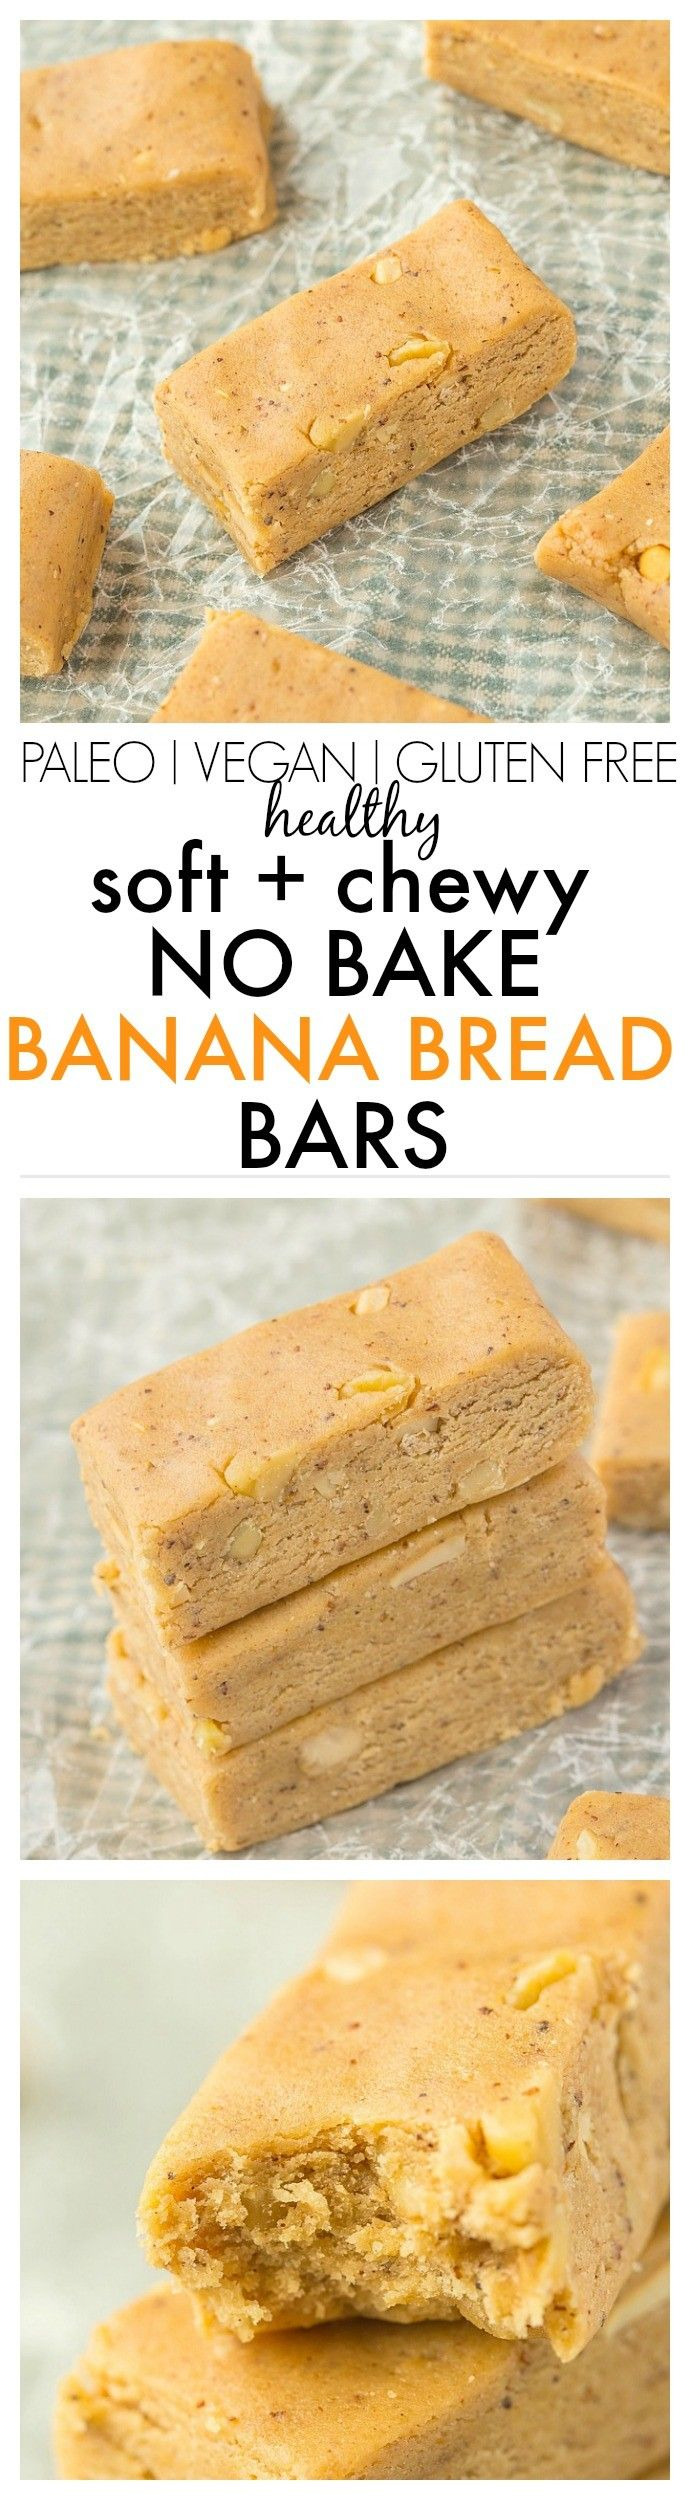 No Bake Banana Bread Protein Bars which have the taste and texture of a classic banana bread MINUS the nasties- Secretly healthy! {vegan, gluten free, paleo recipe} thebigmansworld.com